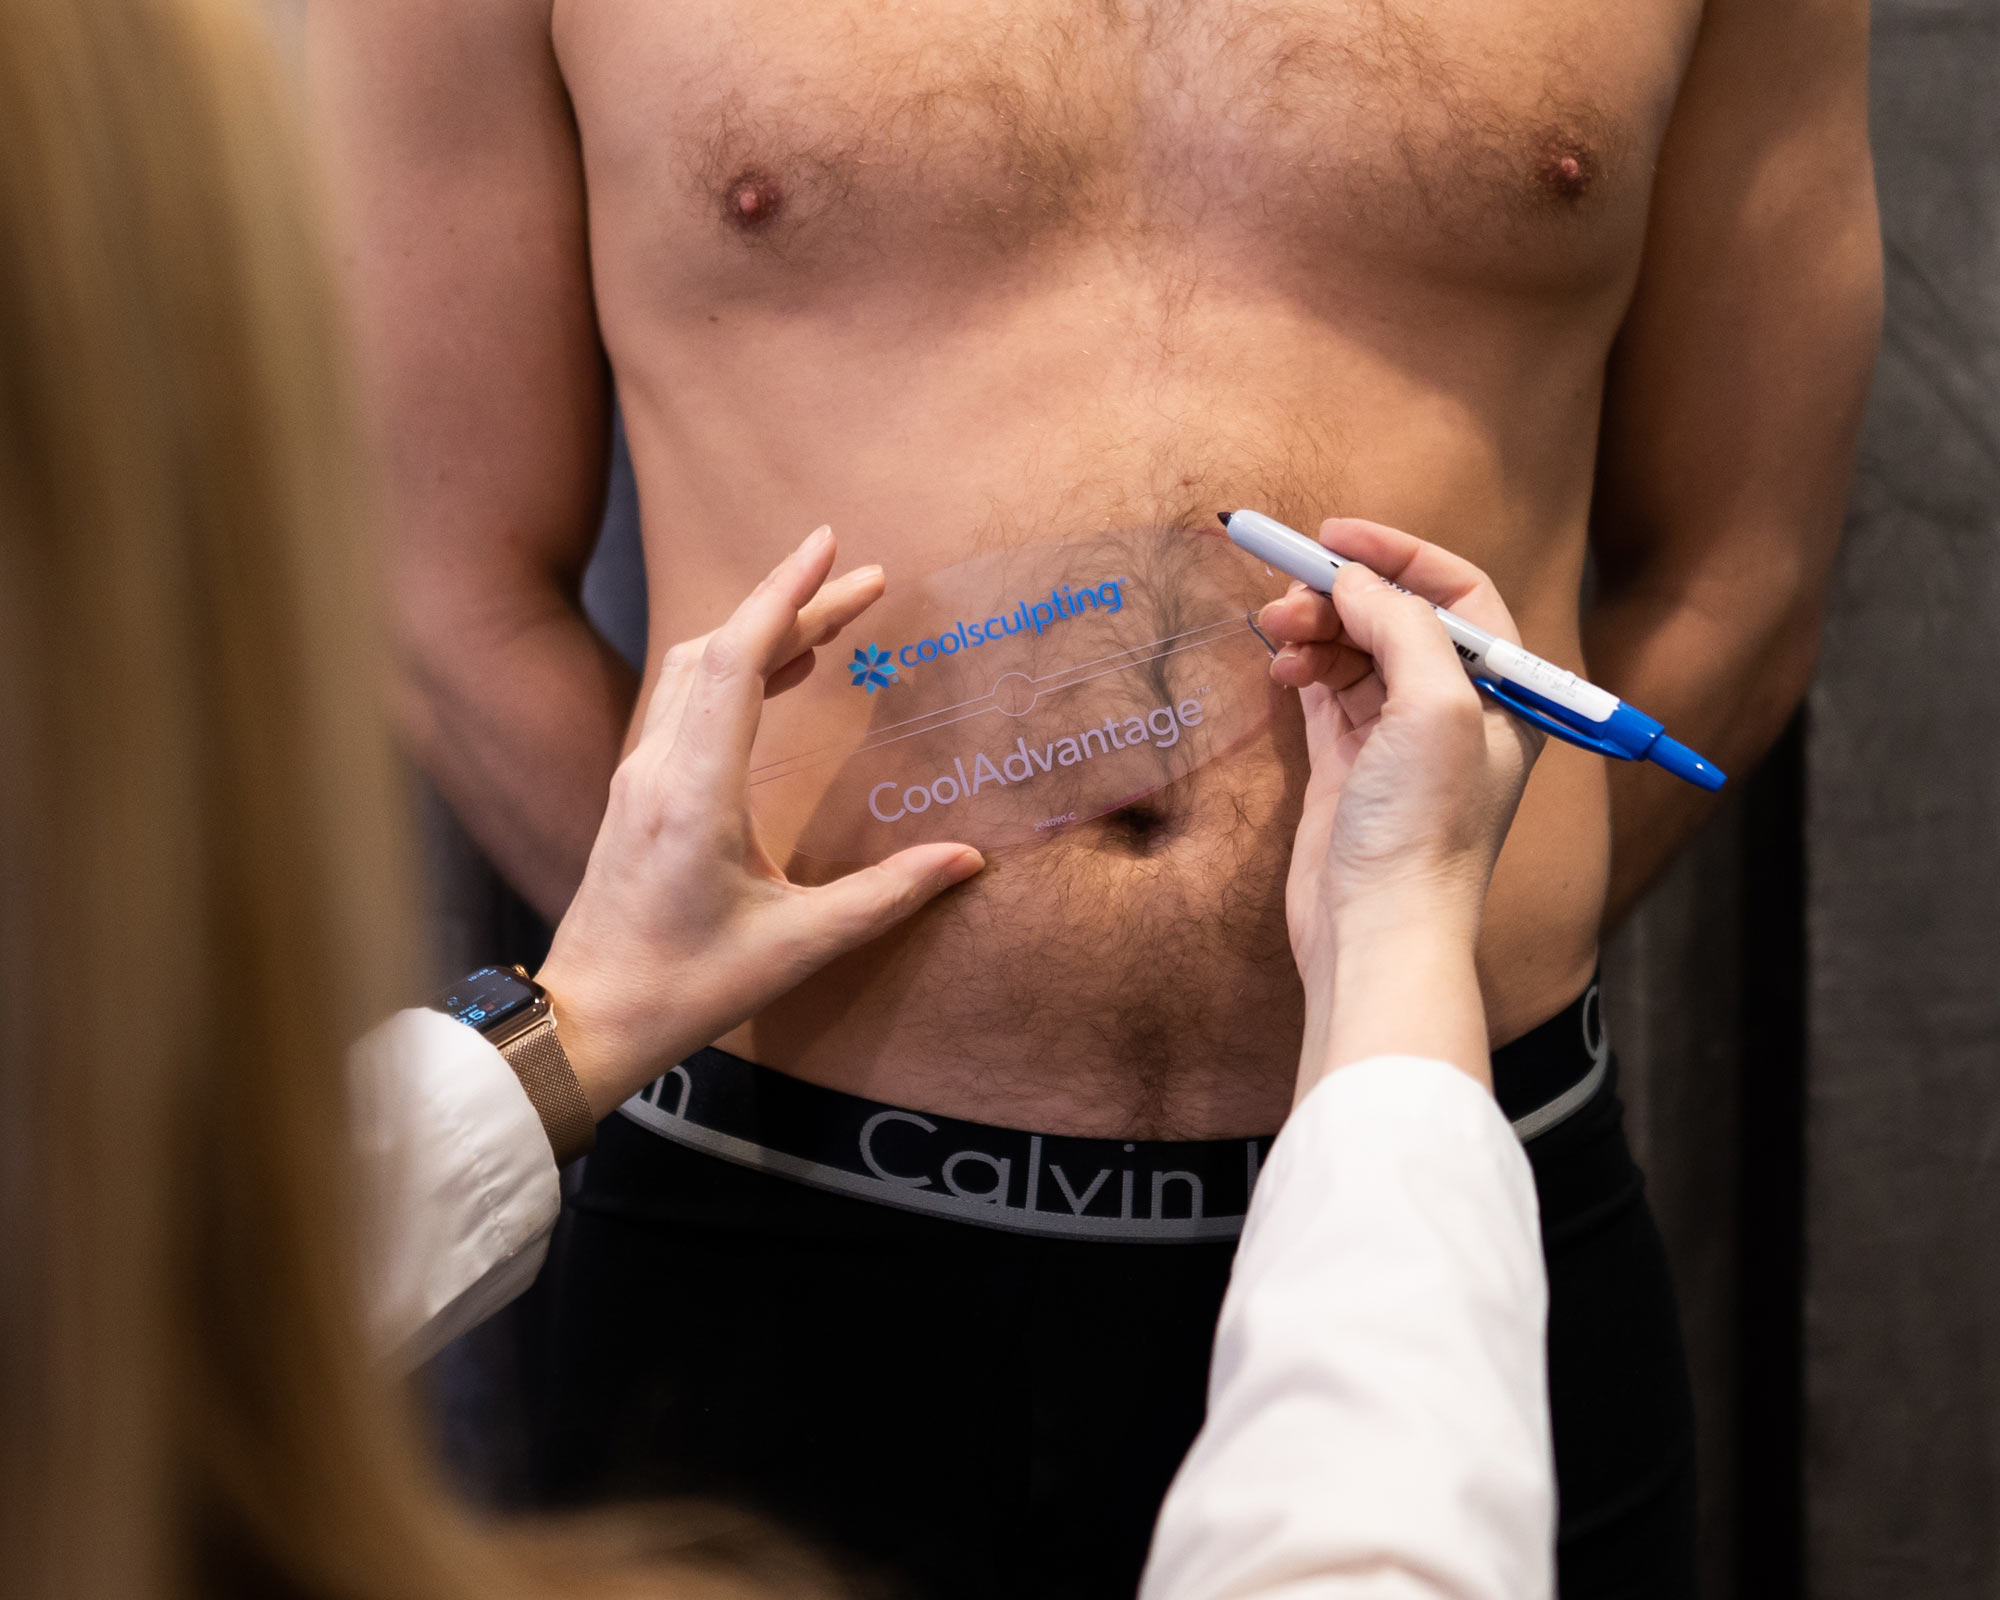 man preparing to do coolsculpting